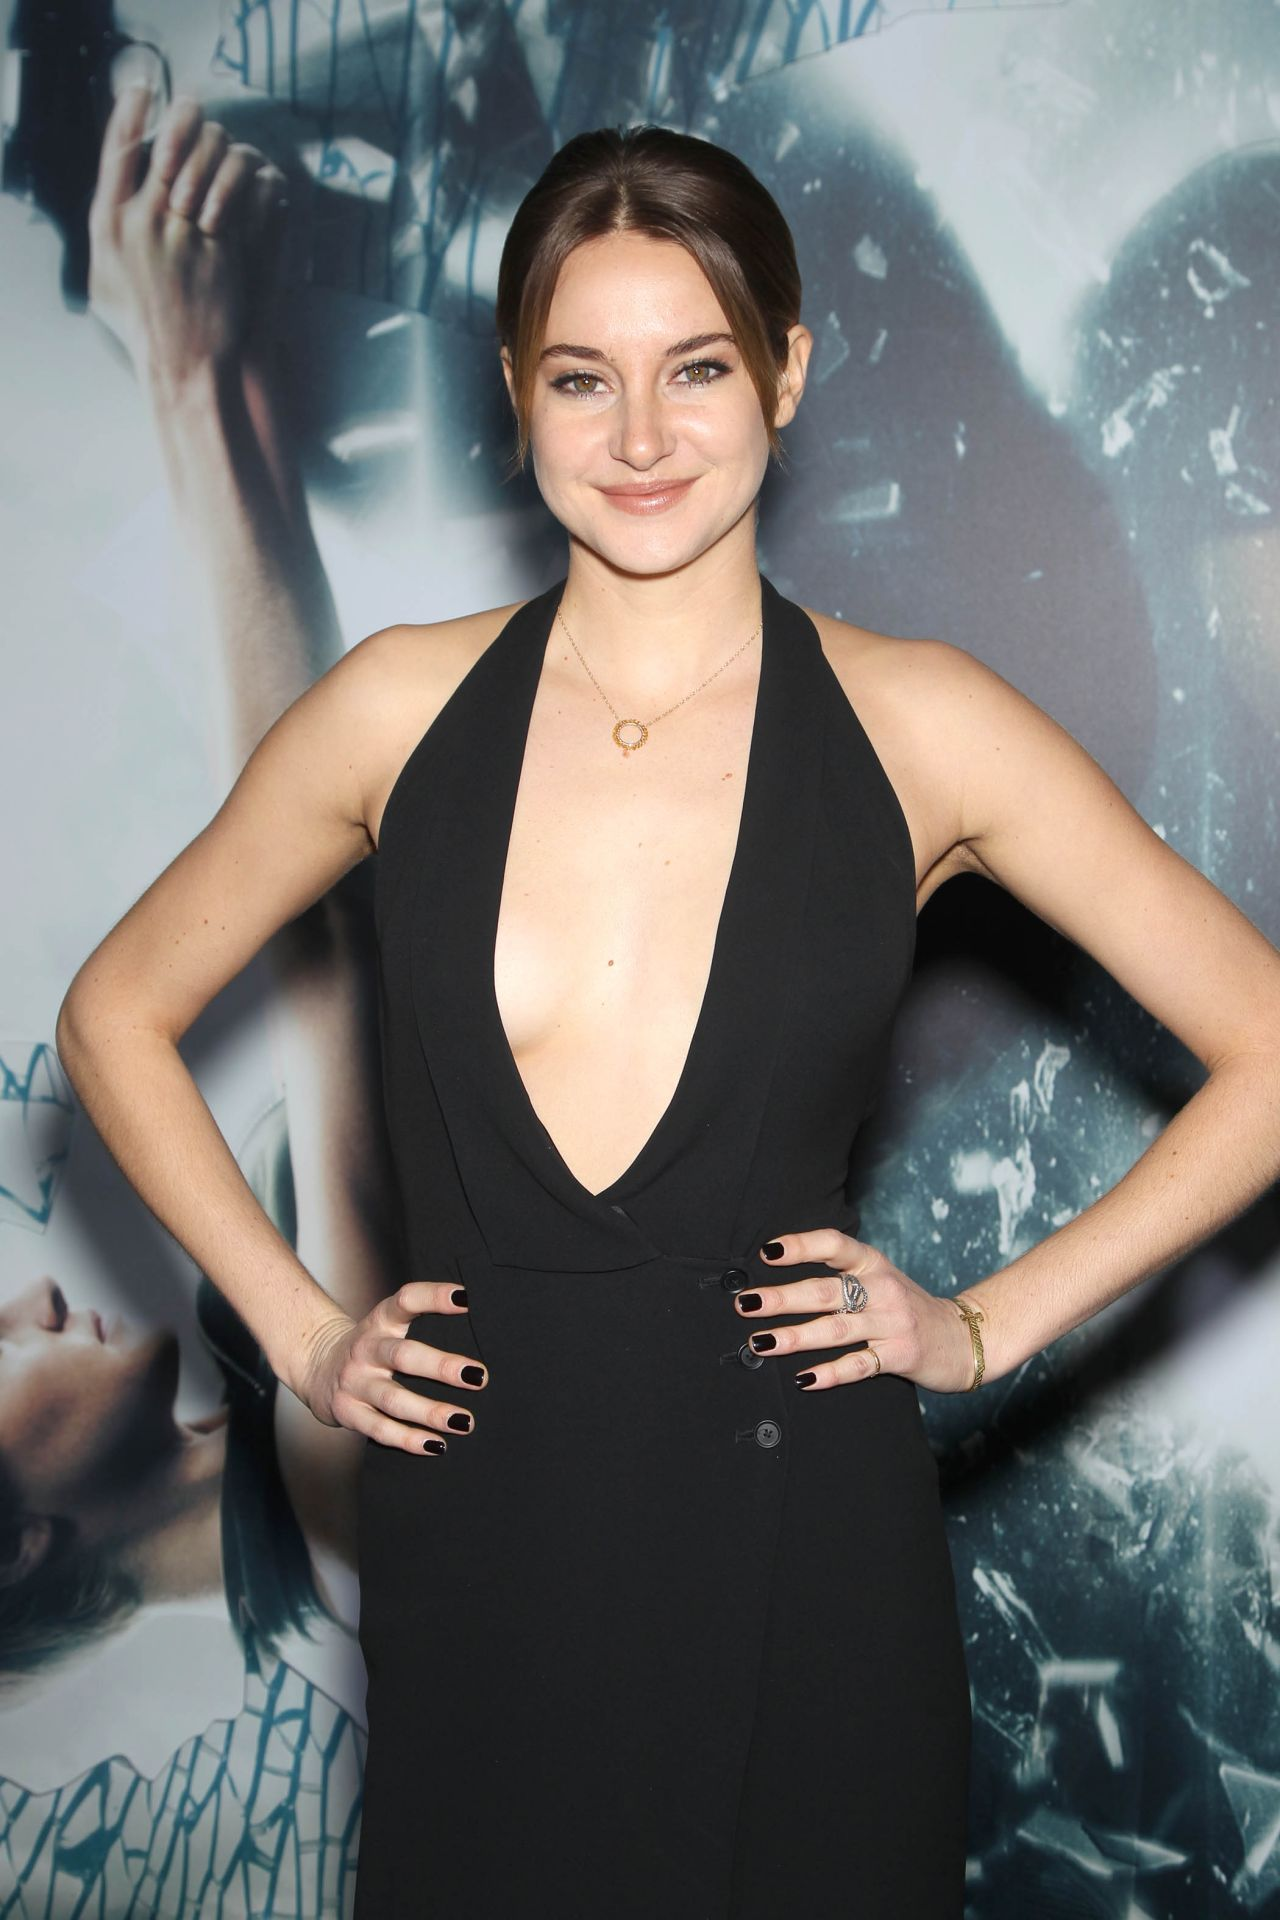 Shailene Woodley - 'Insurgent' Premiere in New York City